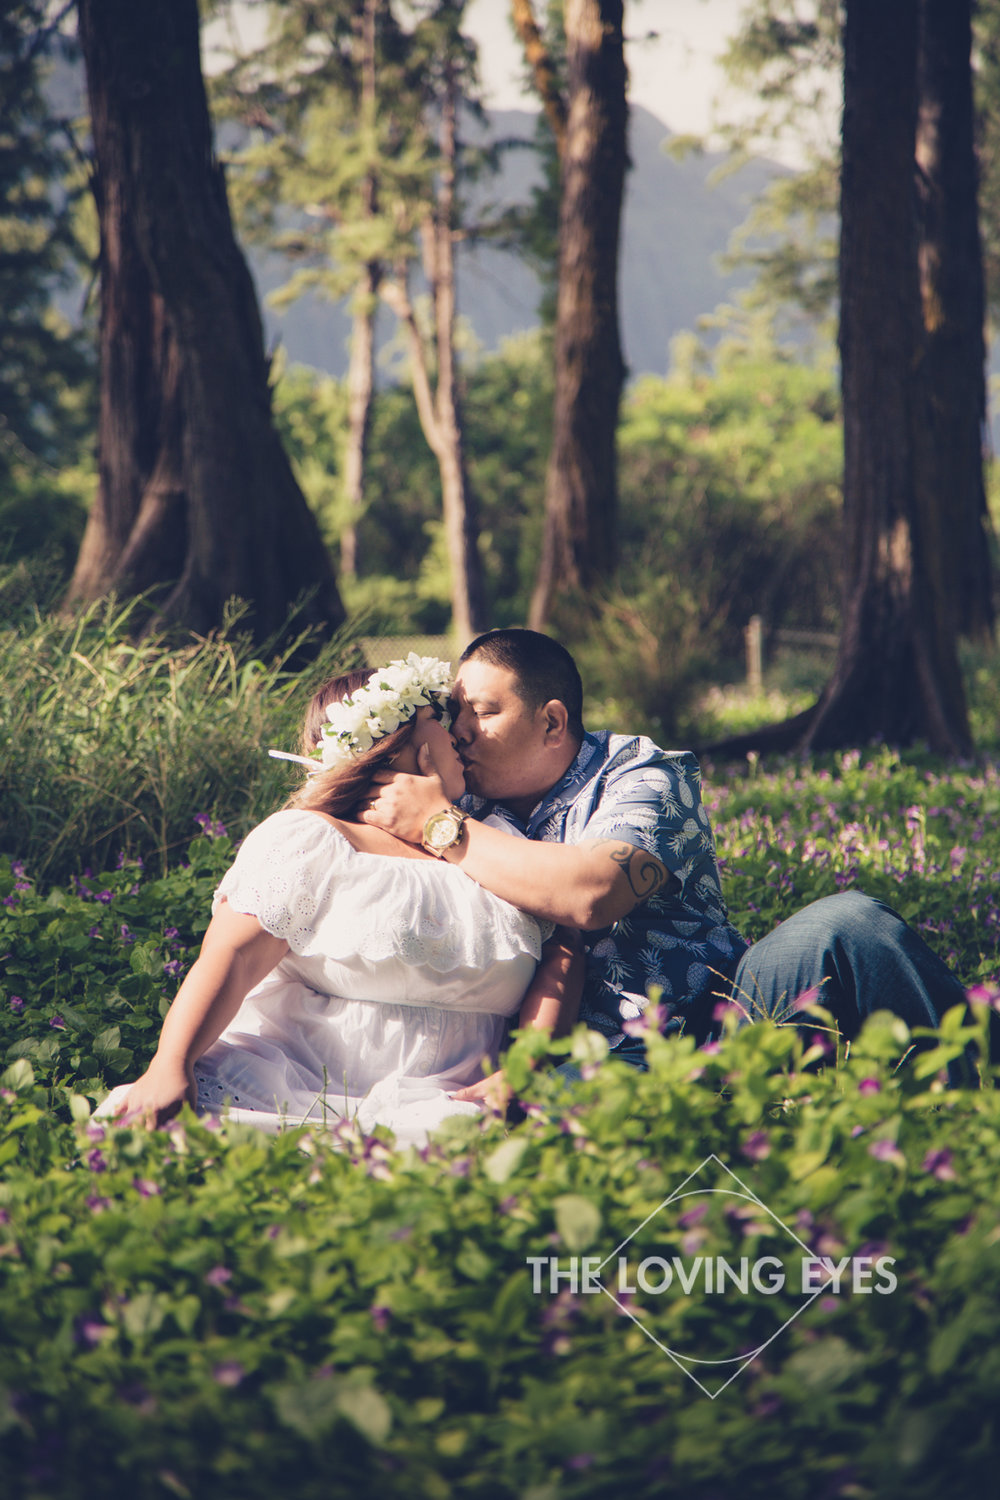 Romantic kiss engagement photo in a field of flowers in Waimanalo in Hawaii